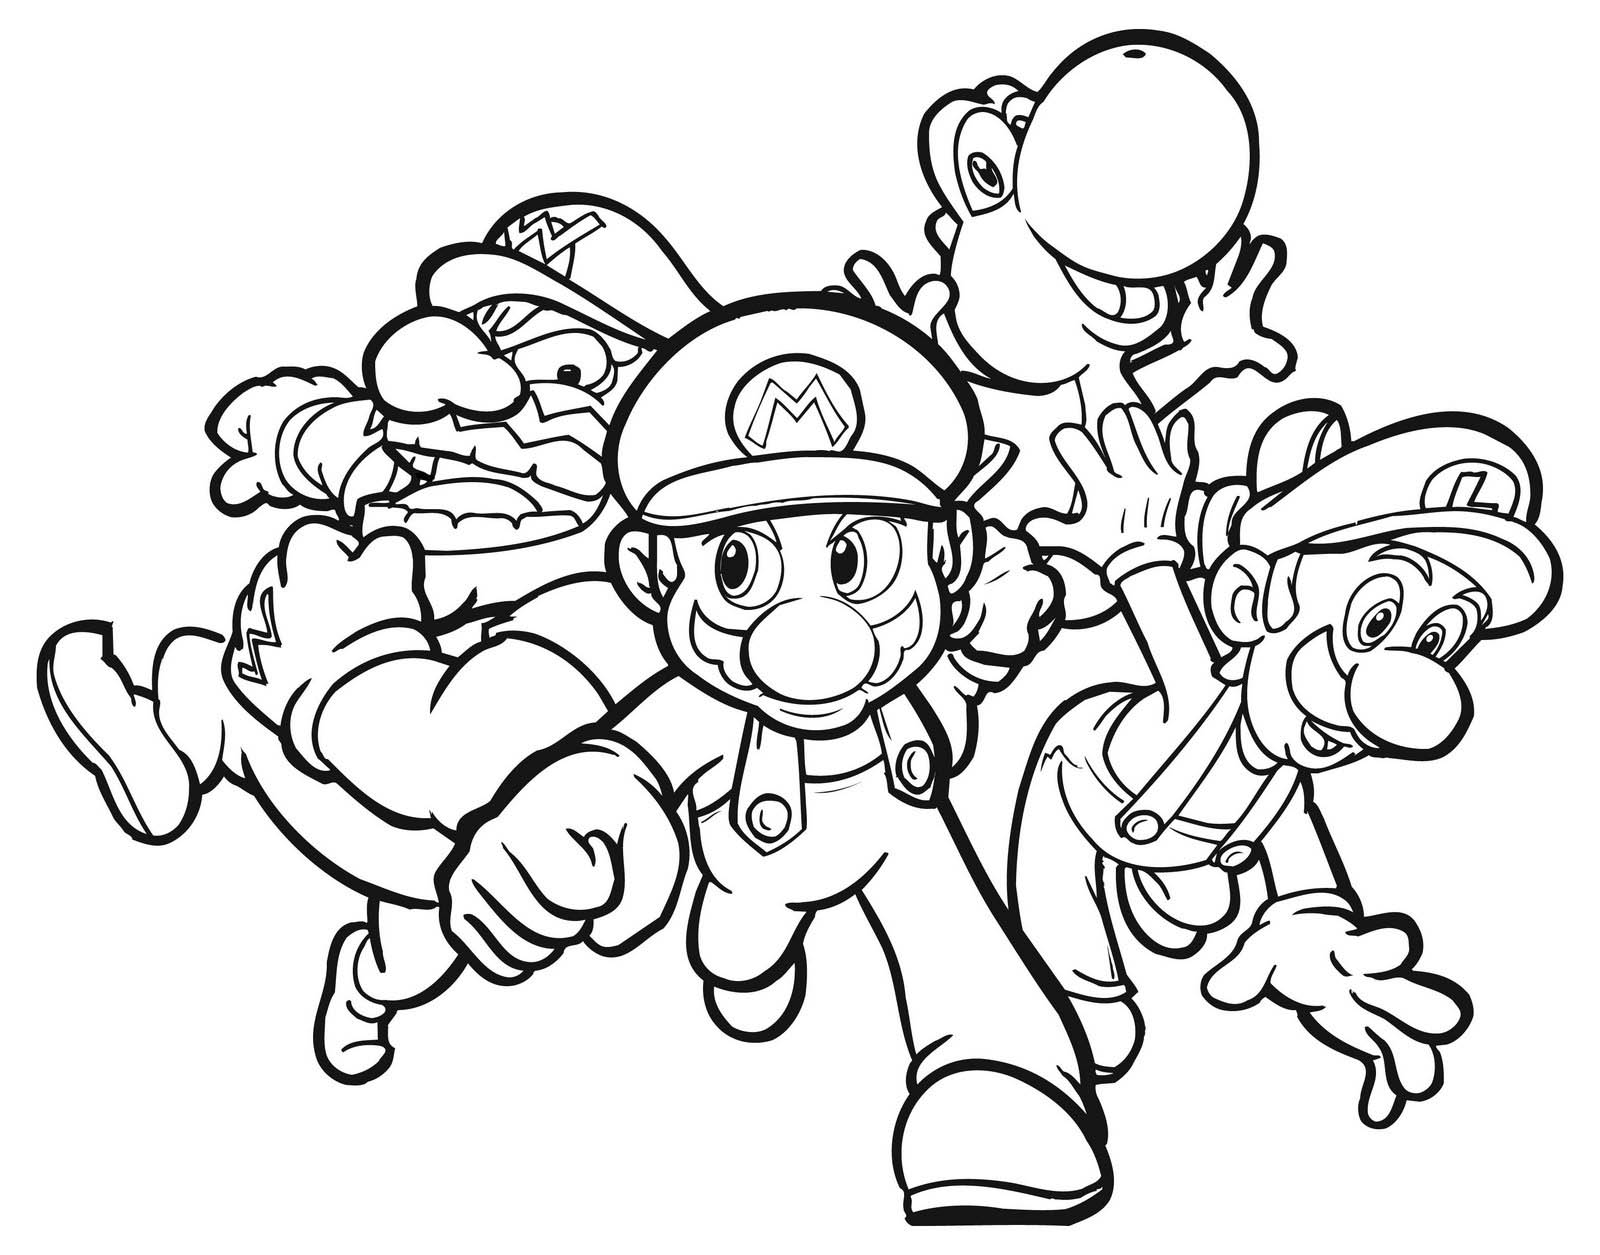 Agile image with regard to mario printable coloring pages